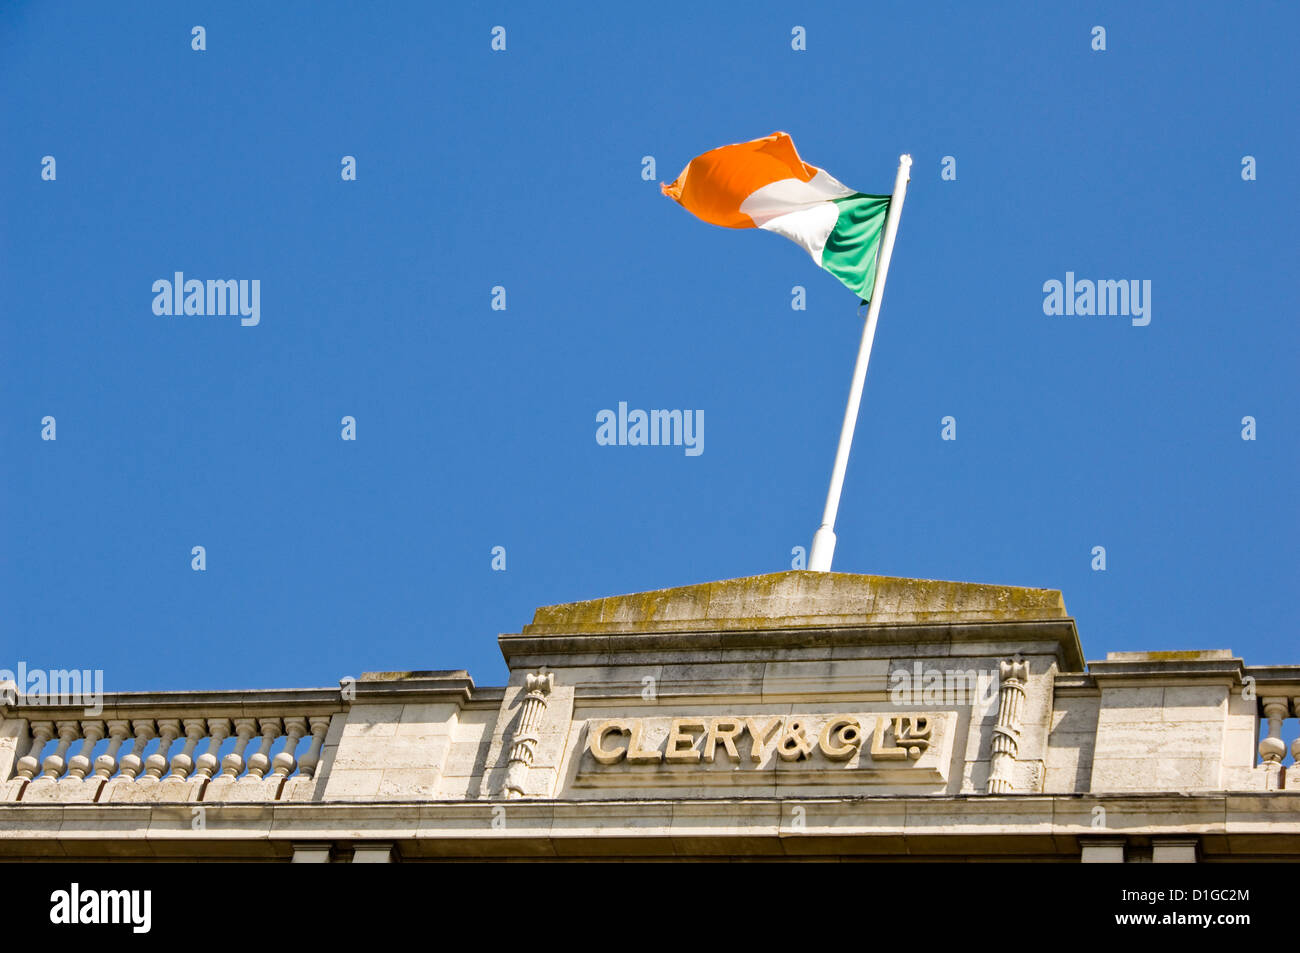 Horizontal view of the Irish national flag flying high above Clery & Co department store in Dublin. Stock Photo